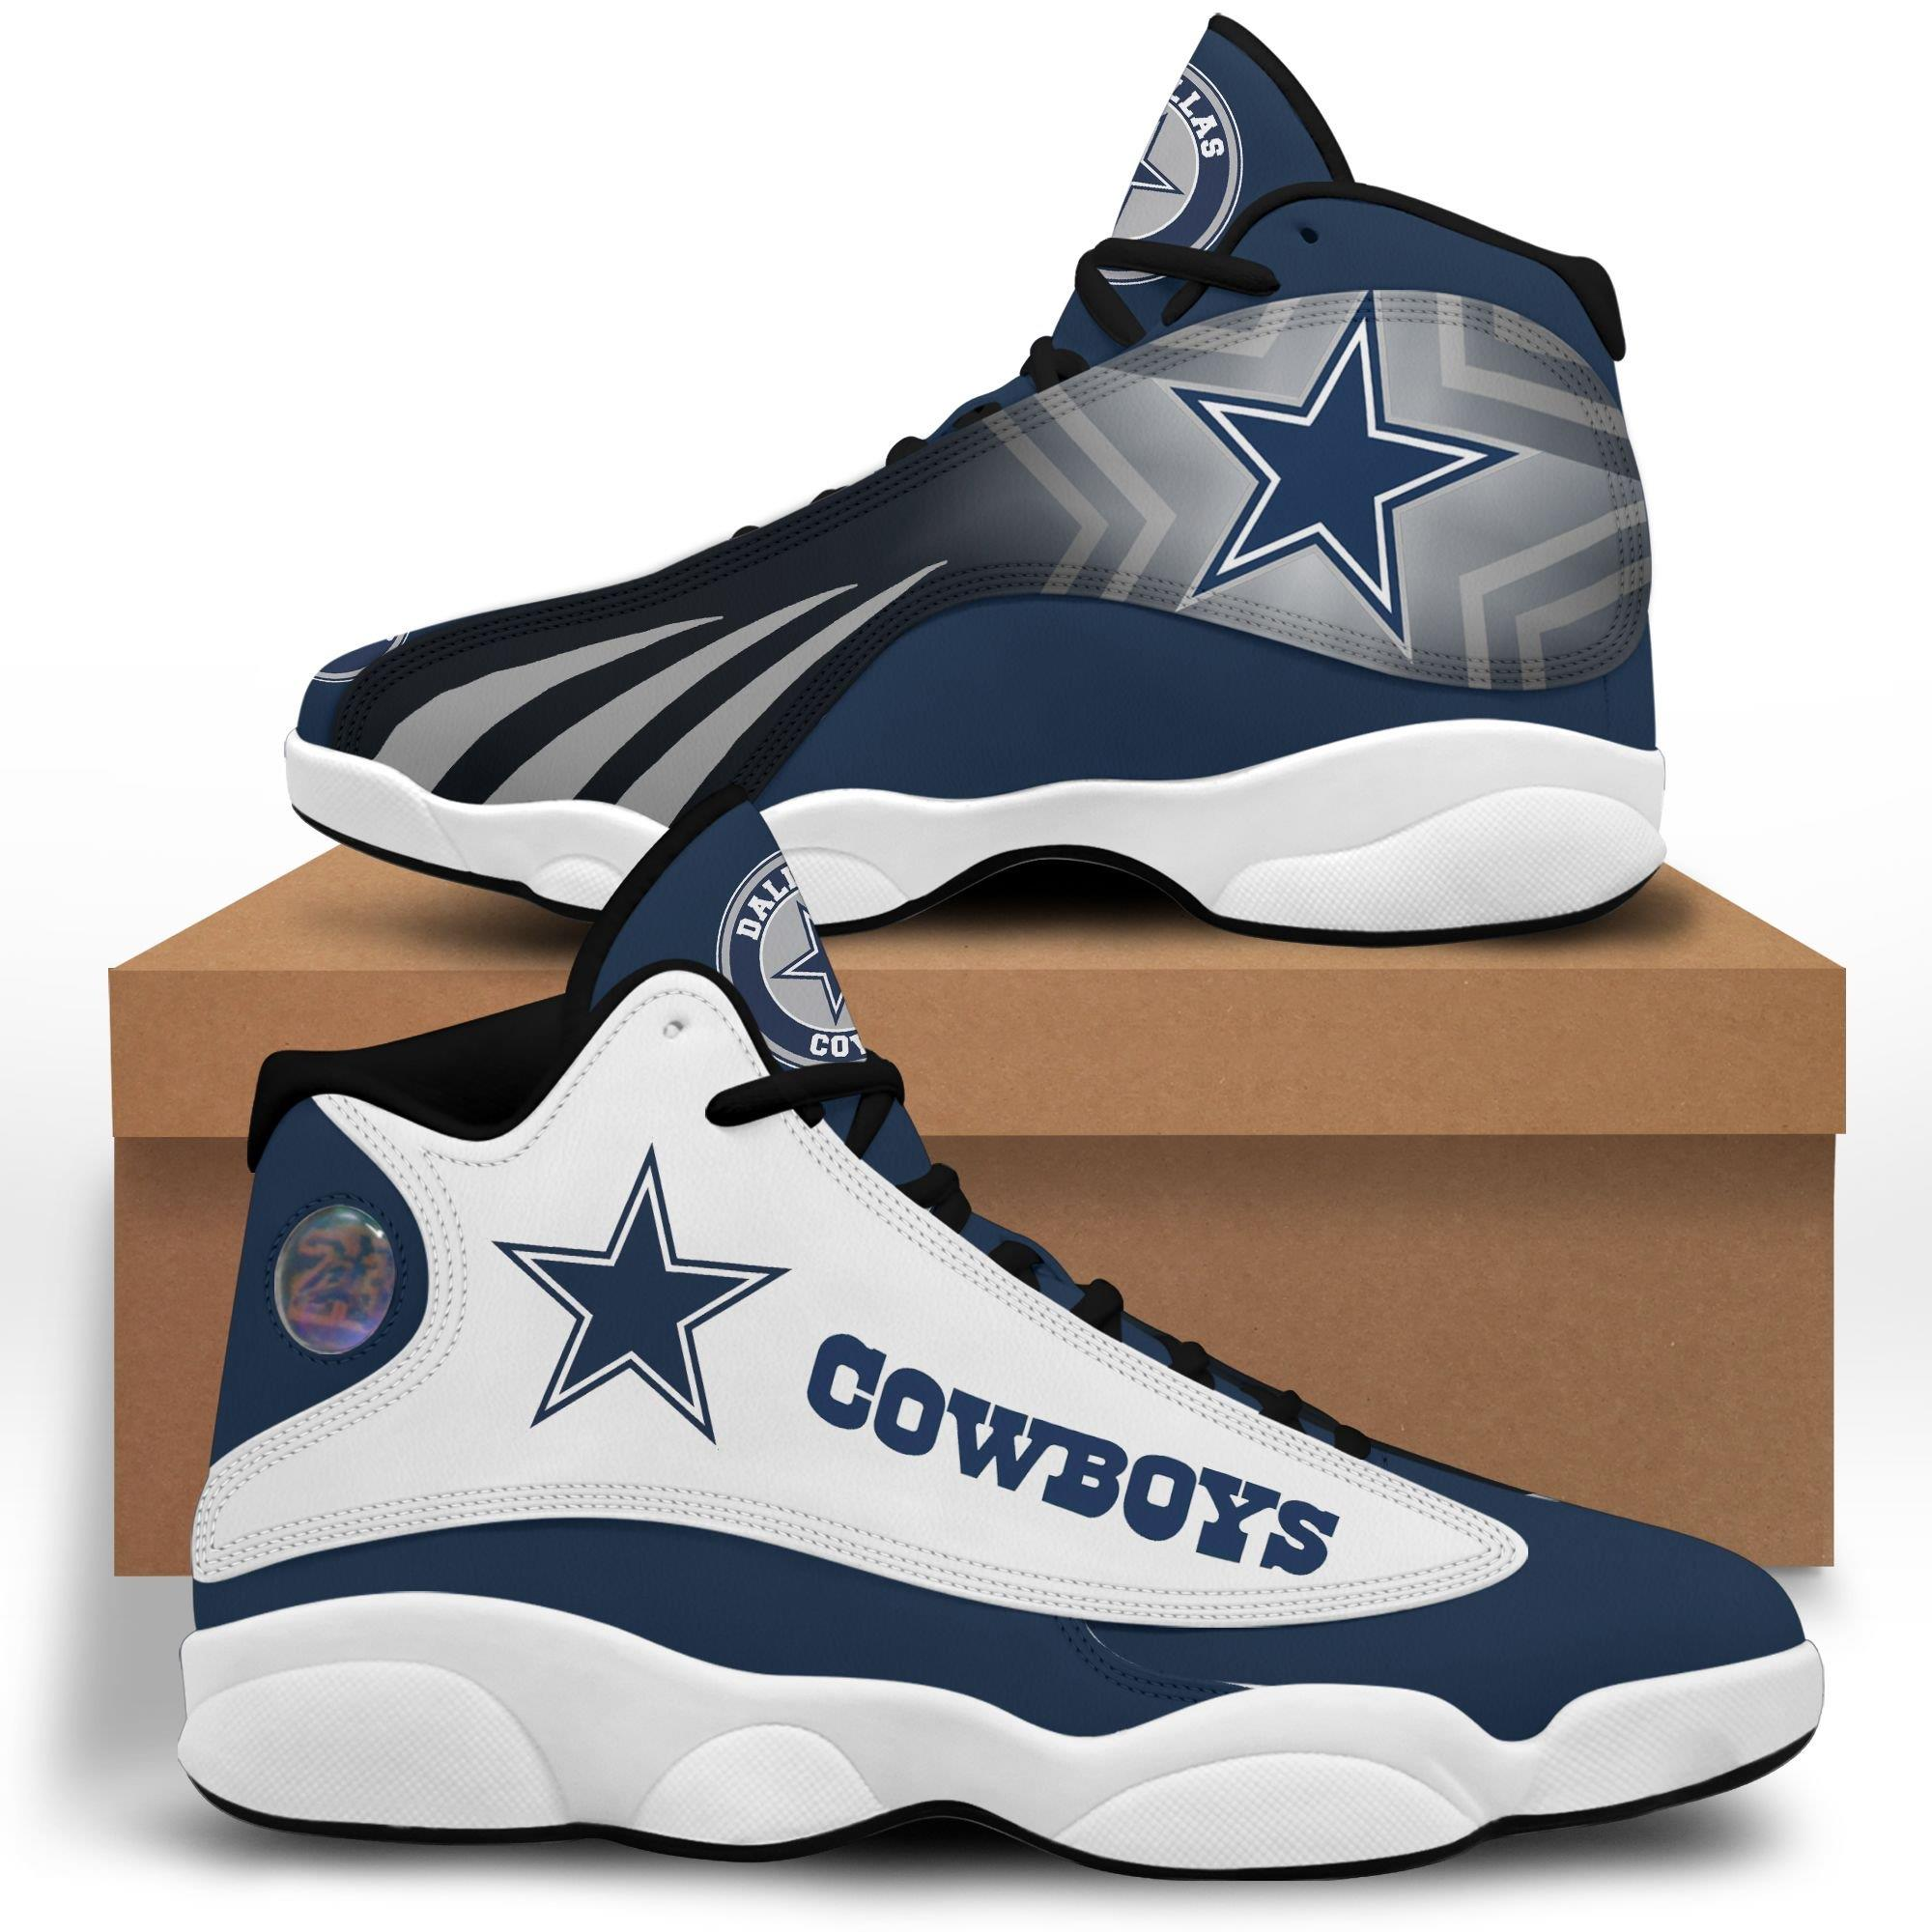 Dallas Cowboys Air Jordan 13 Custom Sneakers Shoes Sport